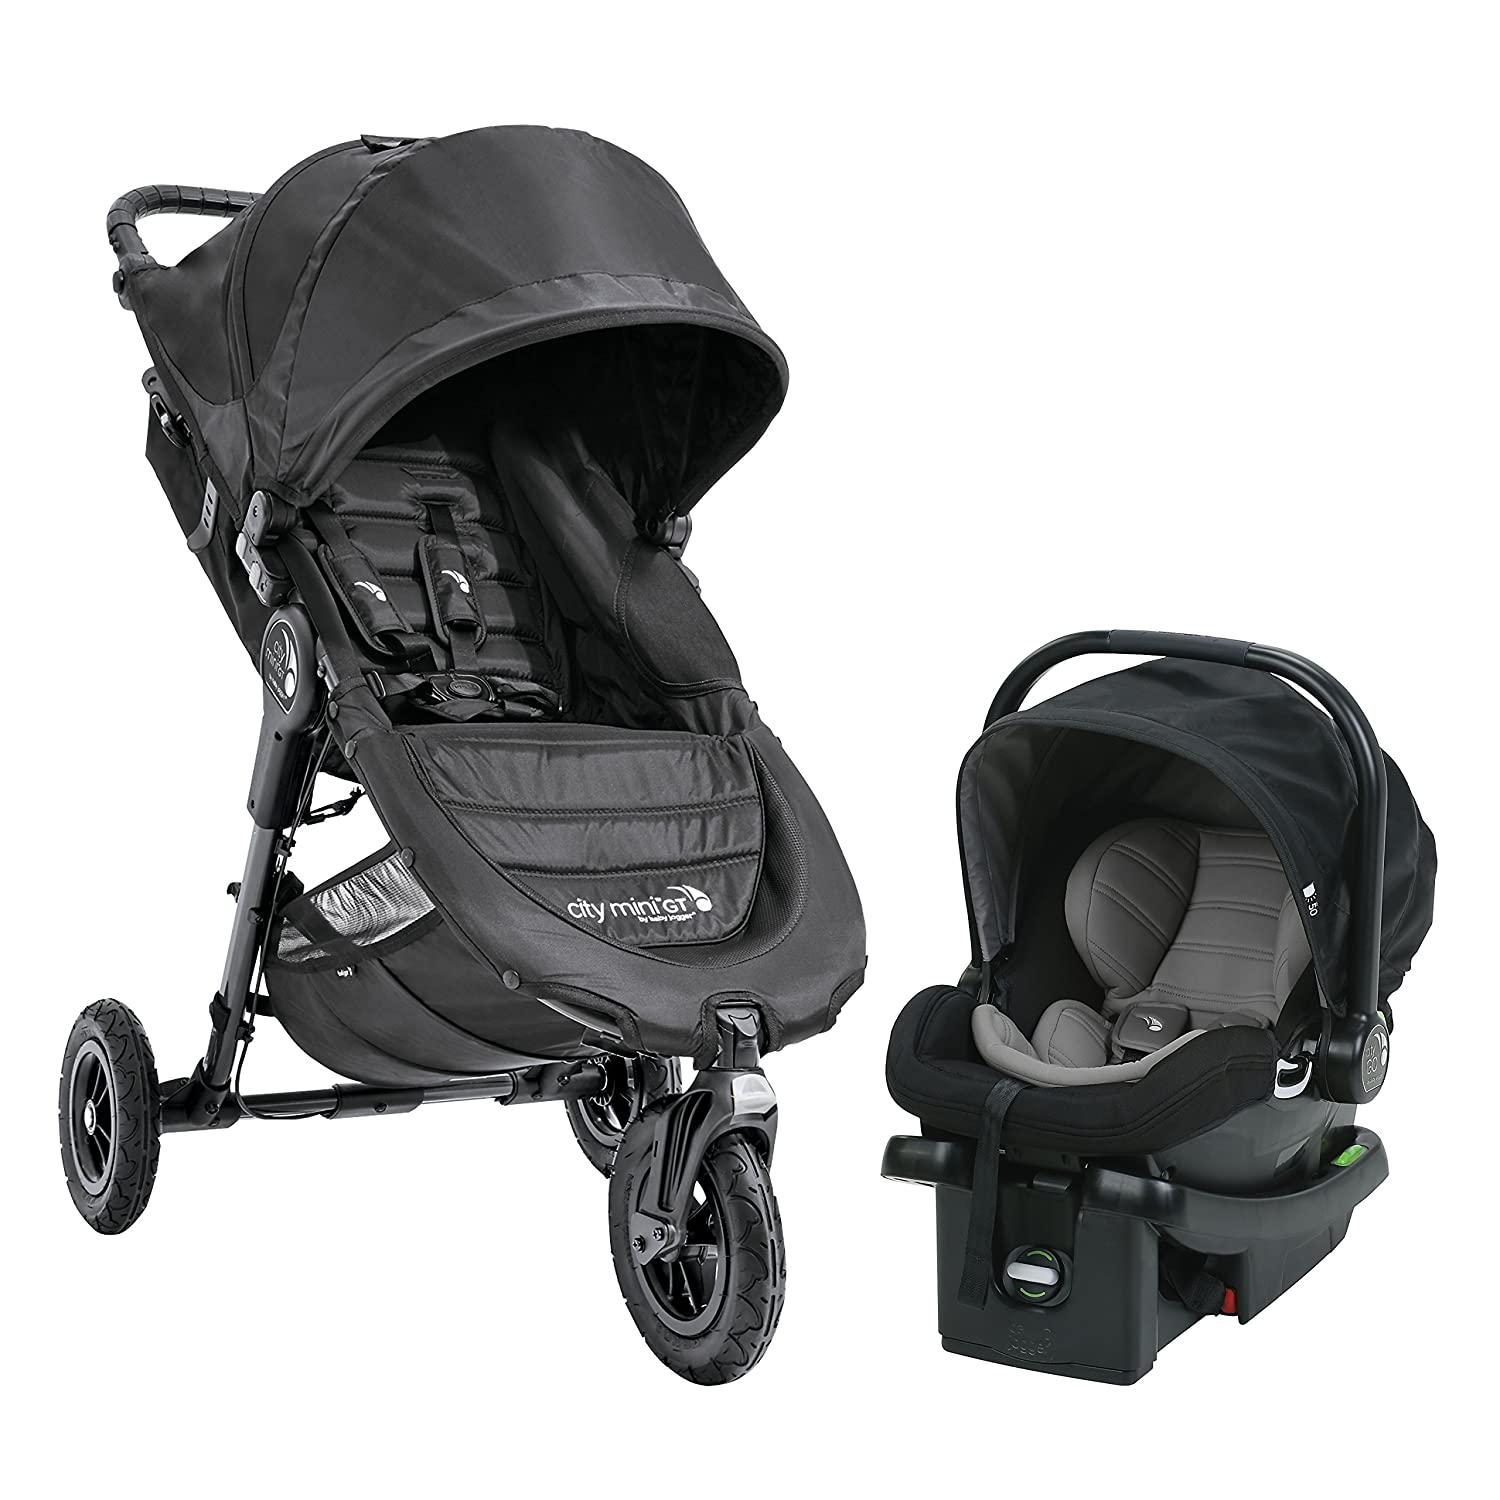 Brand New Baby Jogger City Mini GT Stroller Steel Grey Free Shipping!